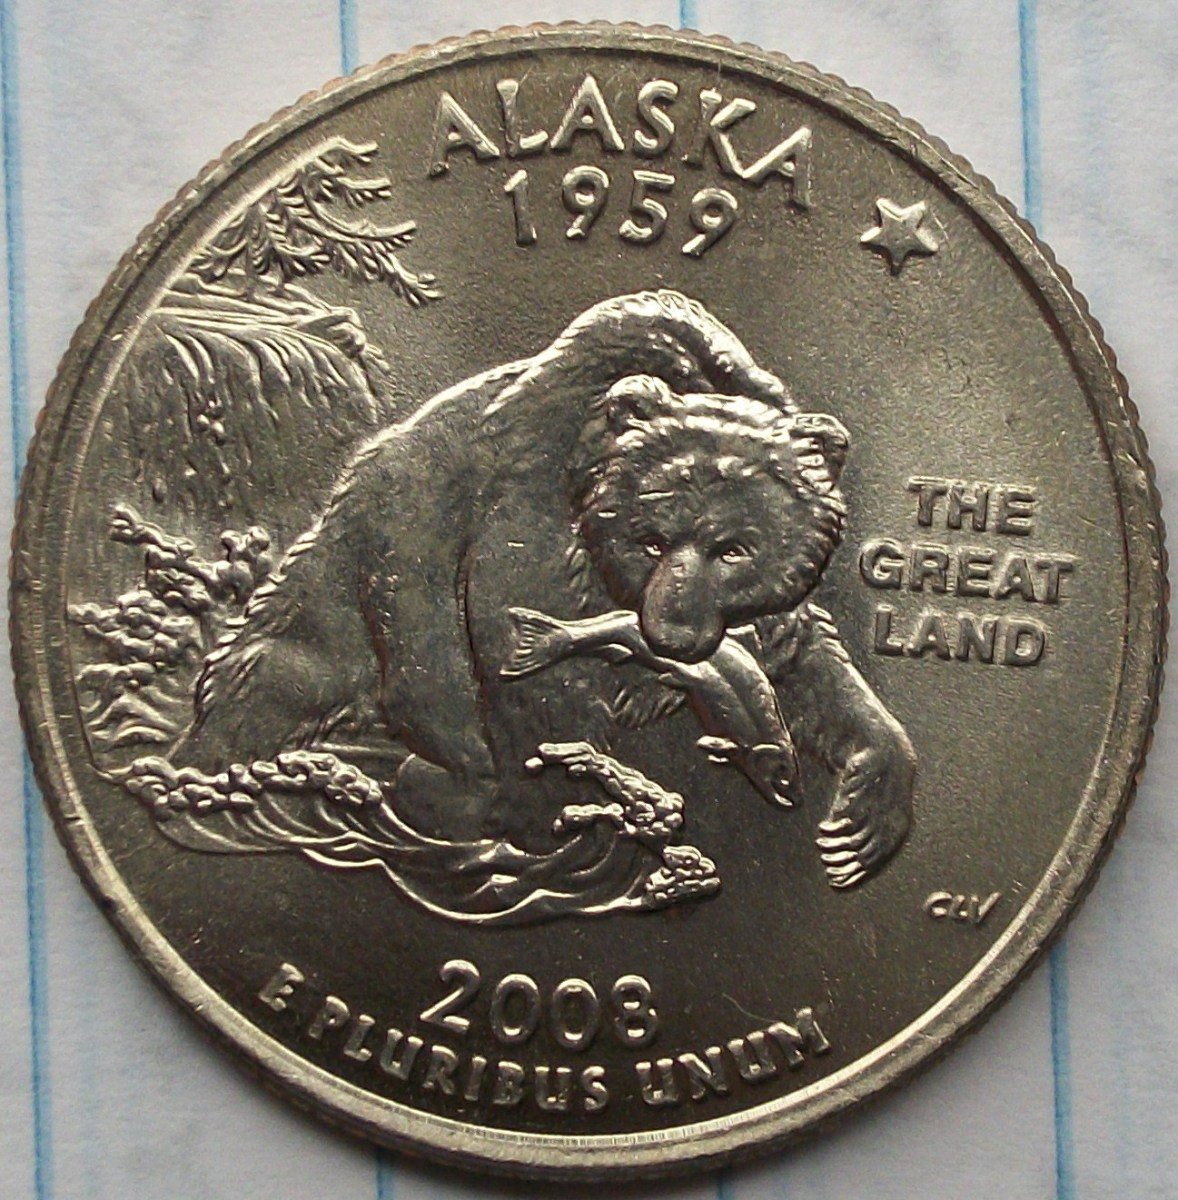 Reverse of the 2008P Alaska Statehood Quarter.